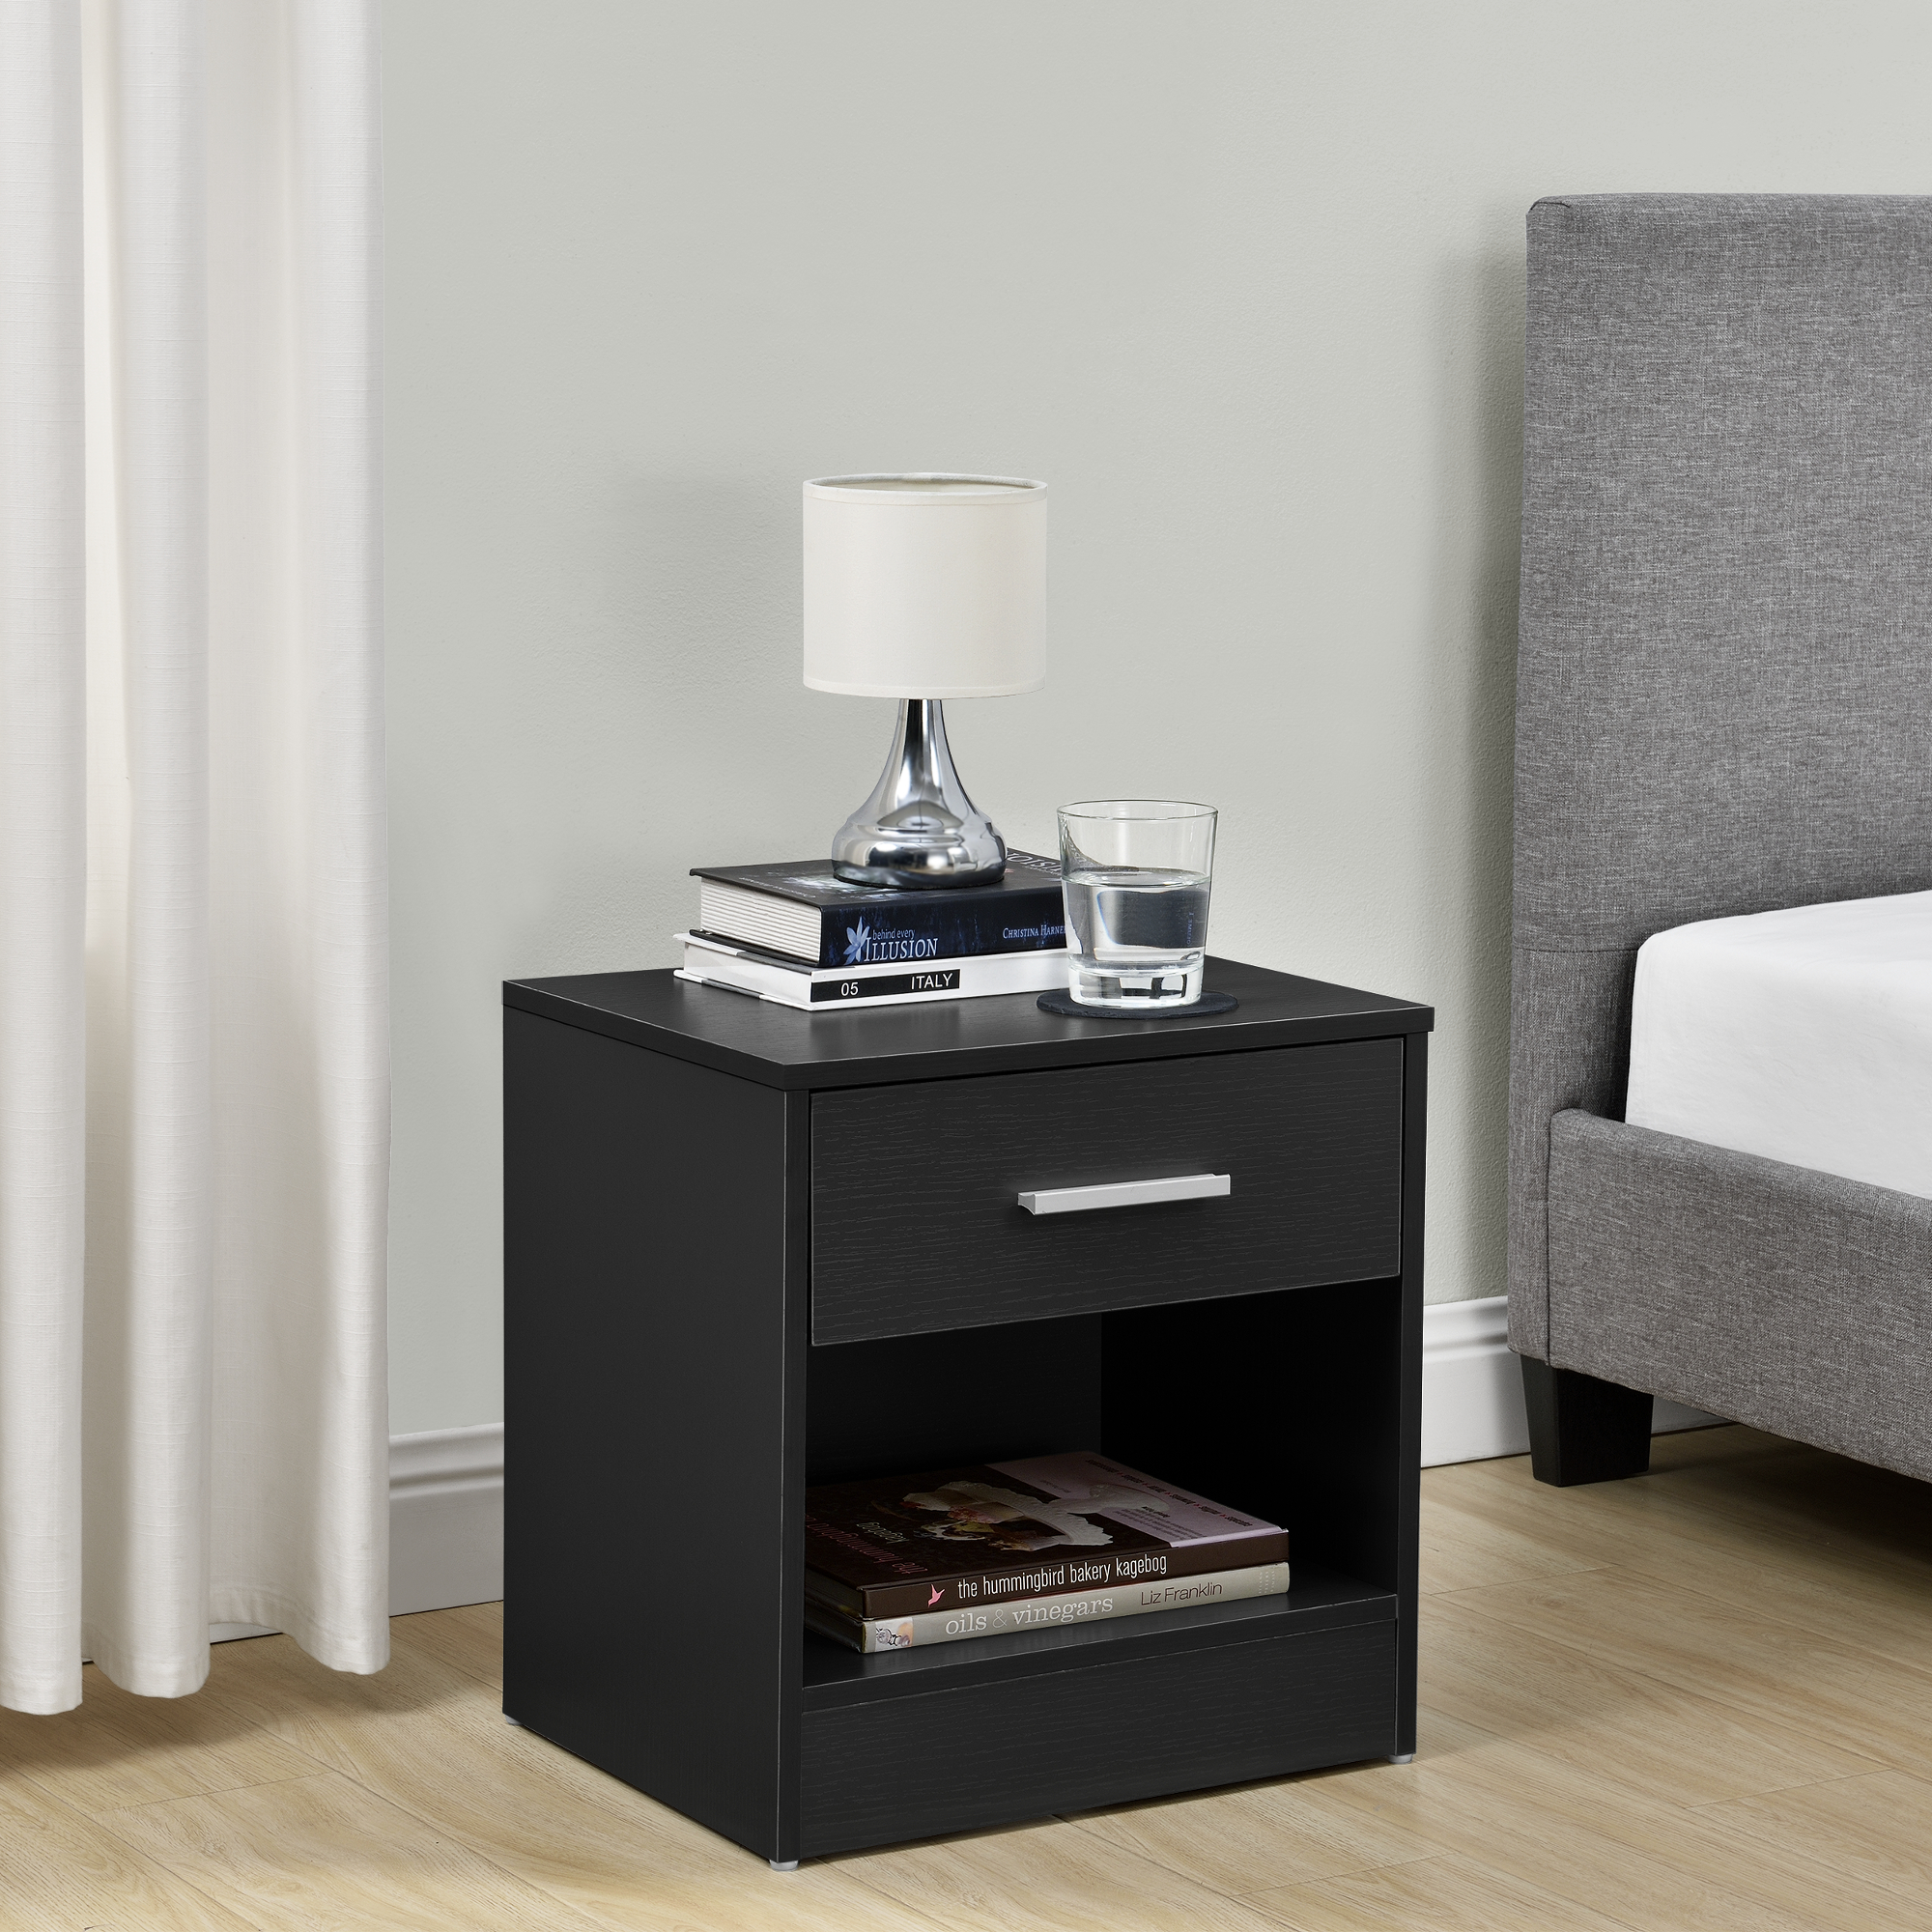 table de chevet tiroir noir commode table d. Black Bedroom Furniture Sets. Home Design Ideas